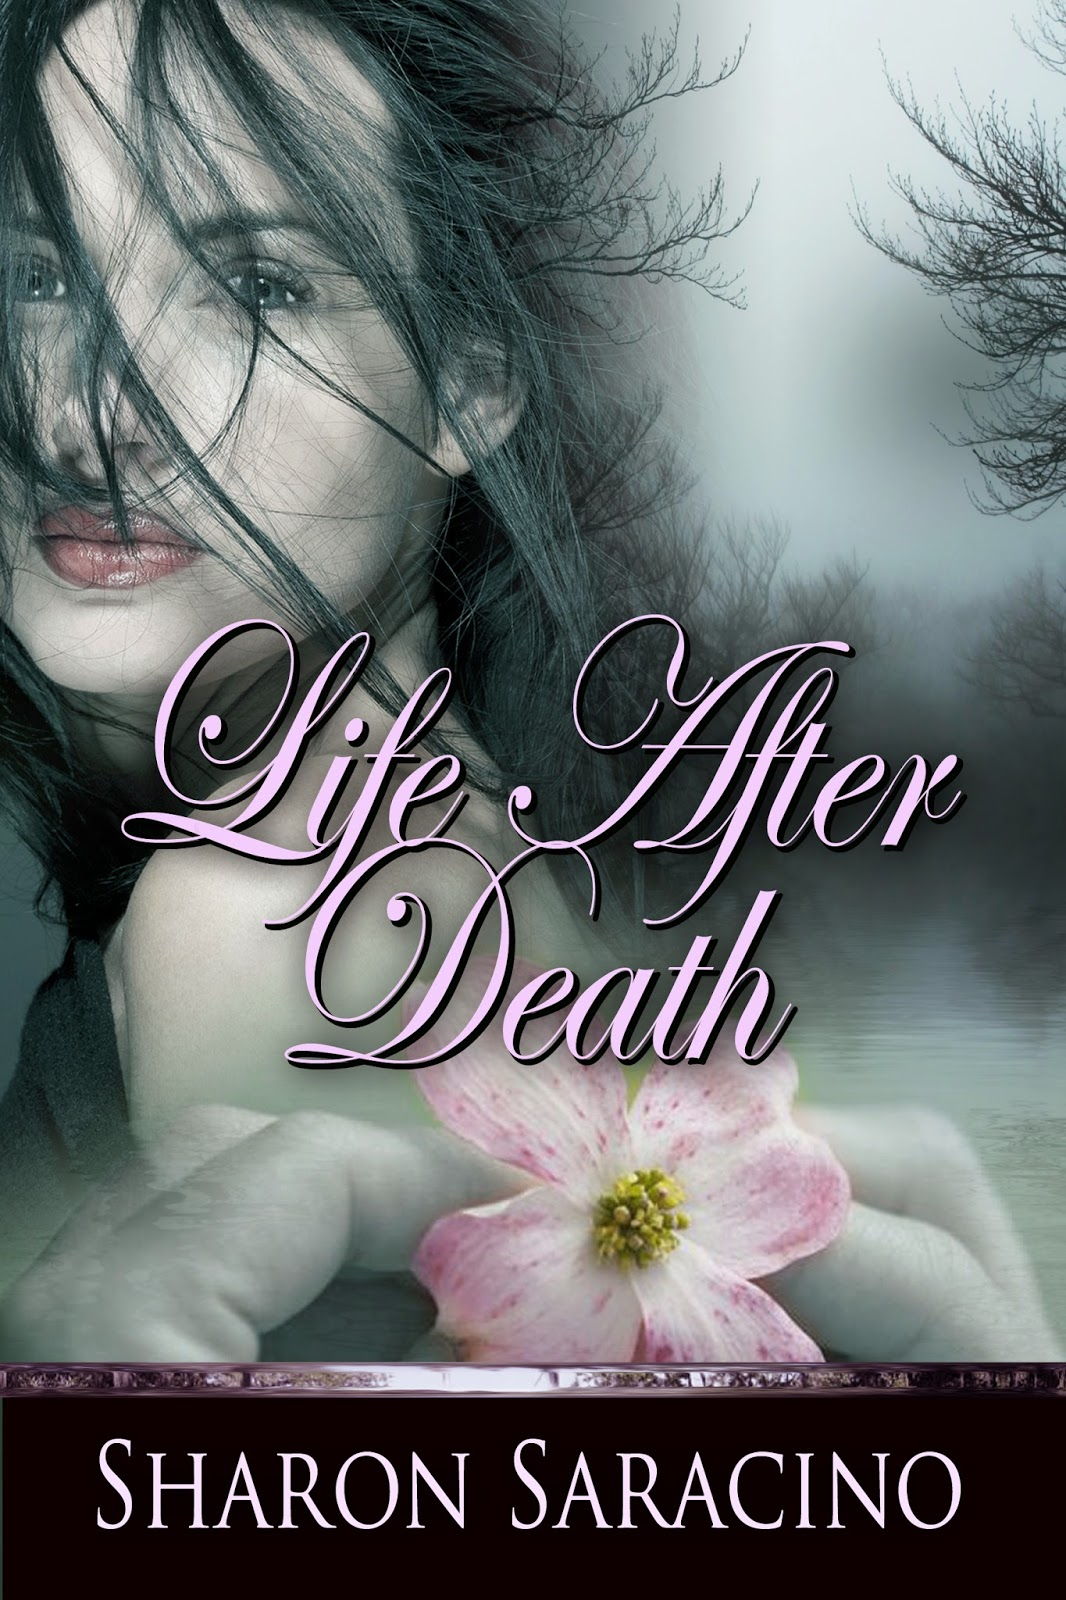 the creative writing life after death Death - quotes and descriptions to inspire creative writing  all her life she had  feared death, suppressed dealing with the notion, never ready to depart always .